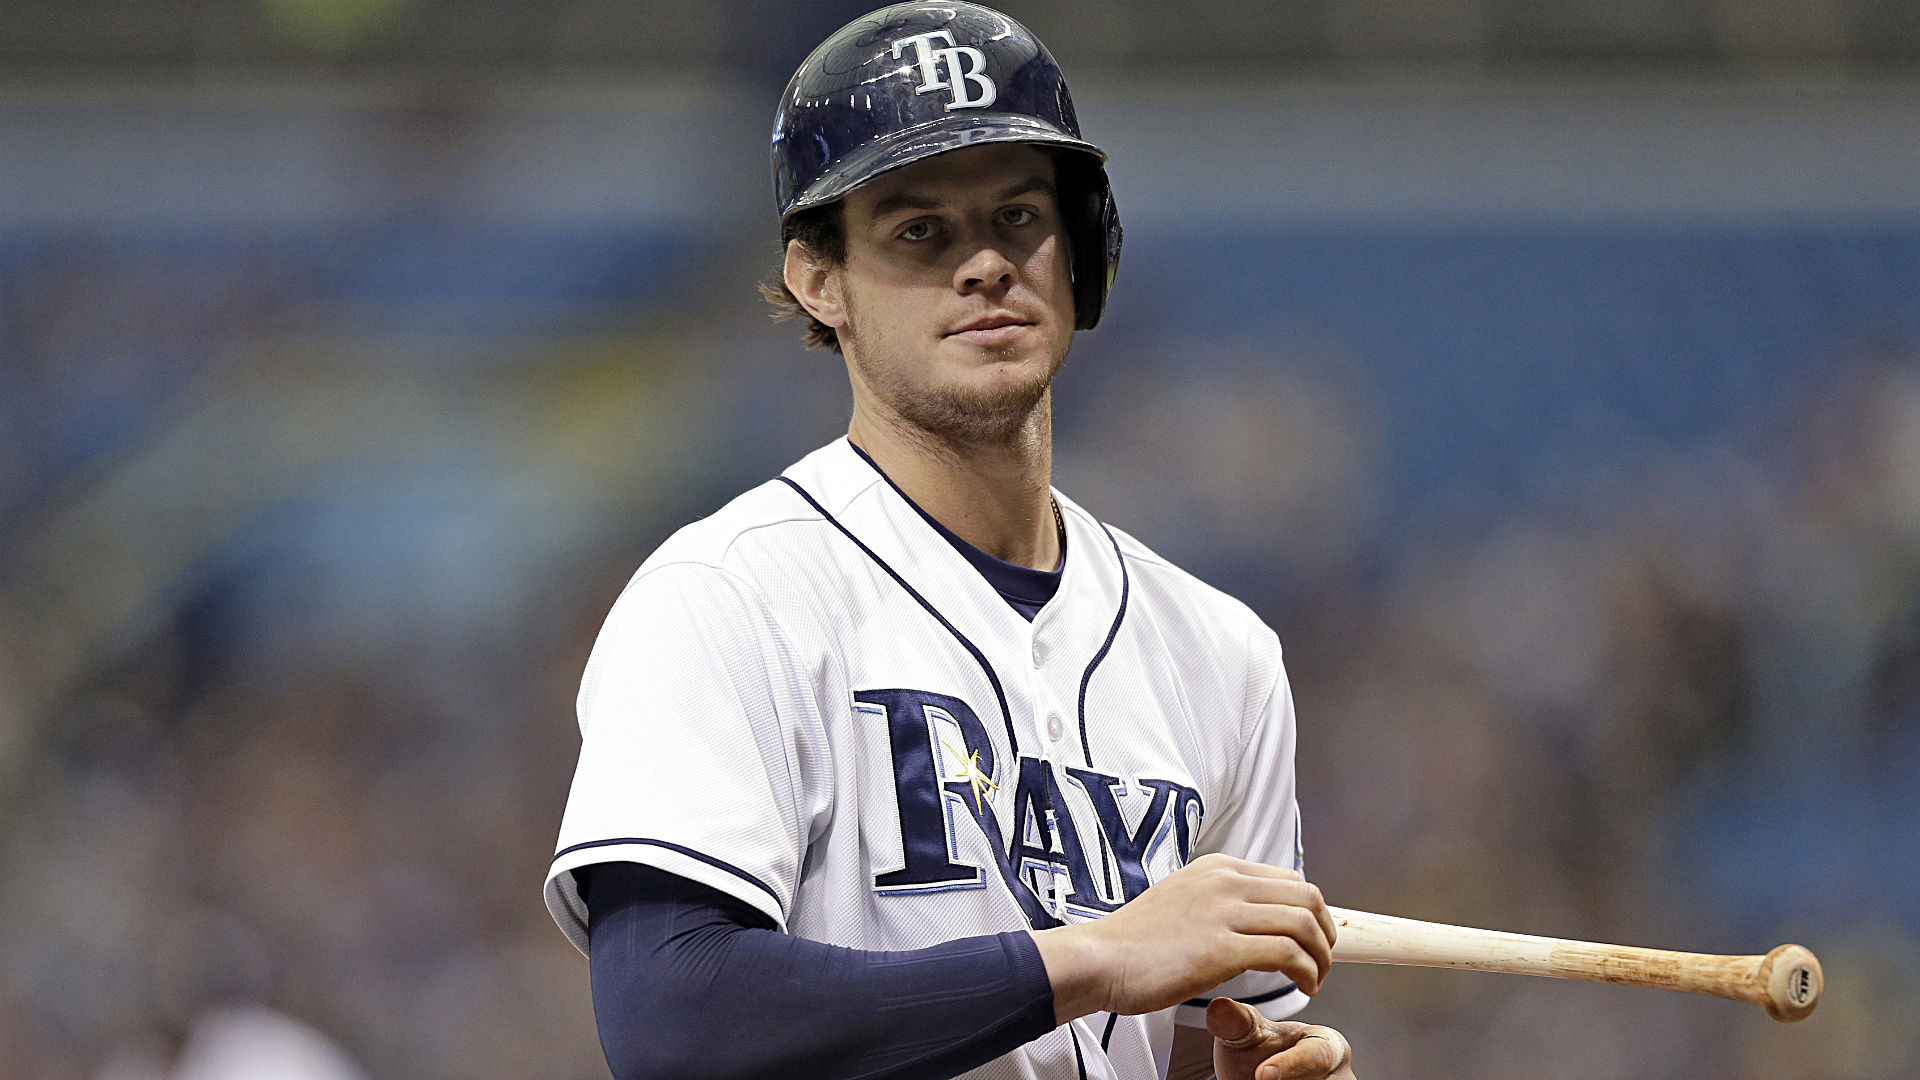 2014 All-Bust Team: Don't let these draft risks ruin your fantasy baseball season